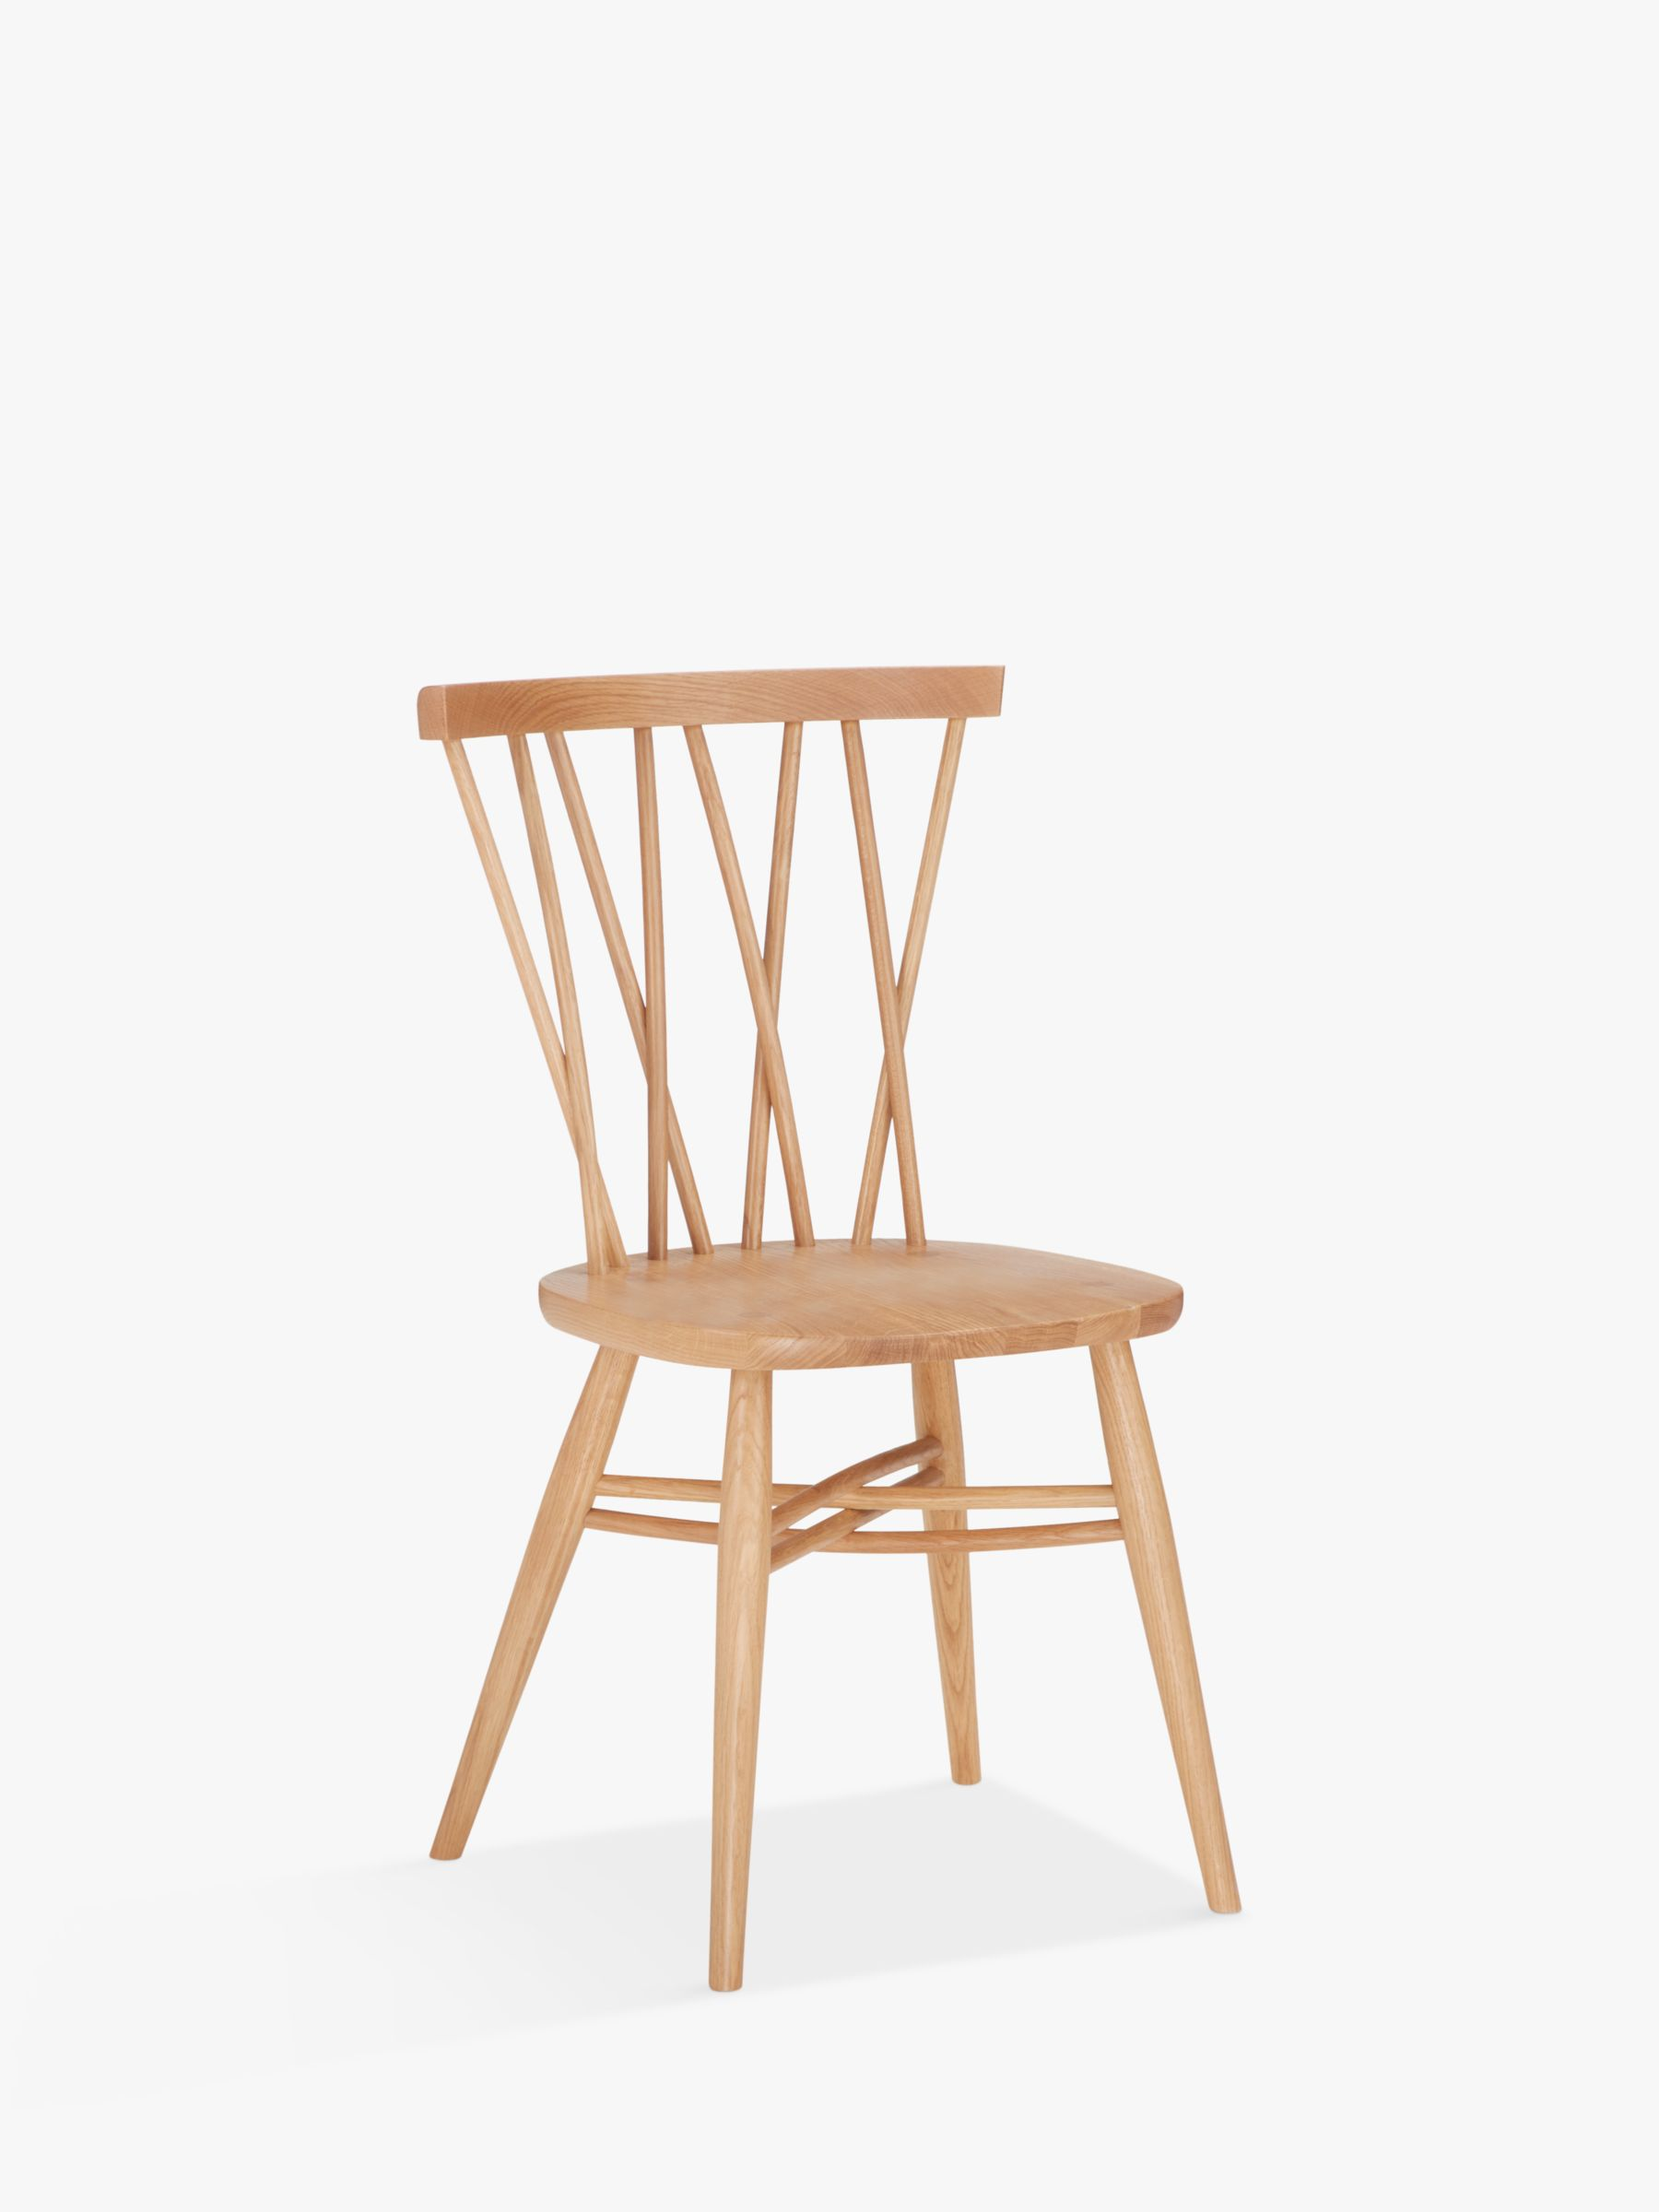 ercol for John Lewis ercol for John Lewis Shalstone Dining Chair, Oak